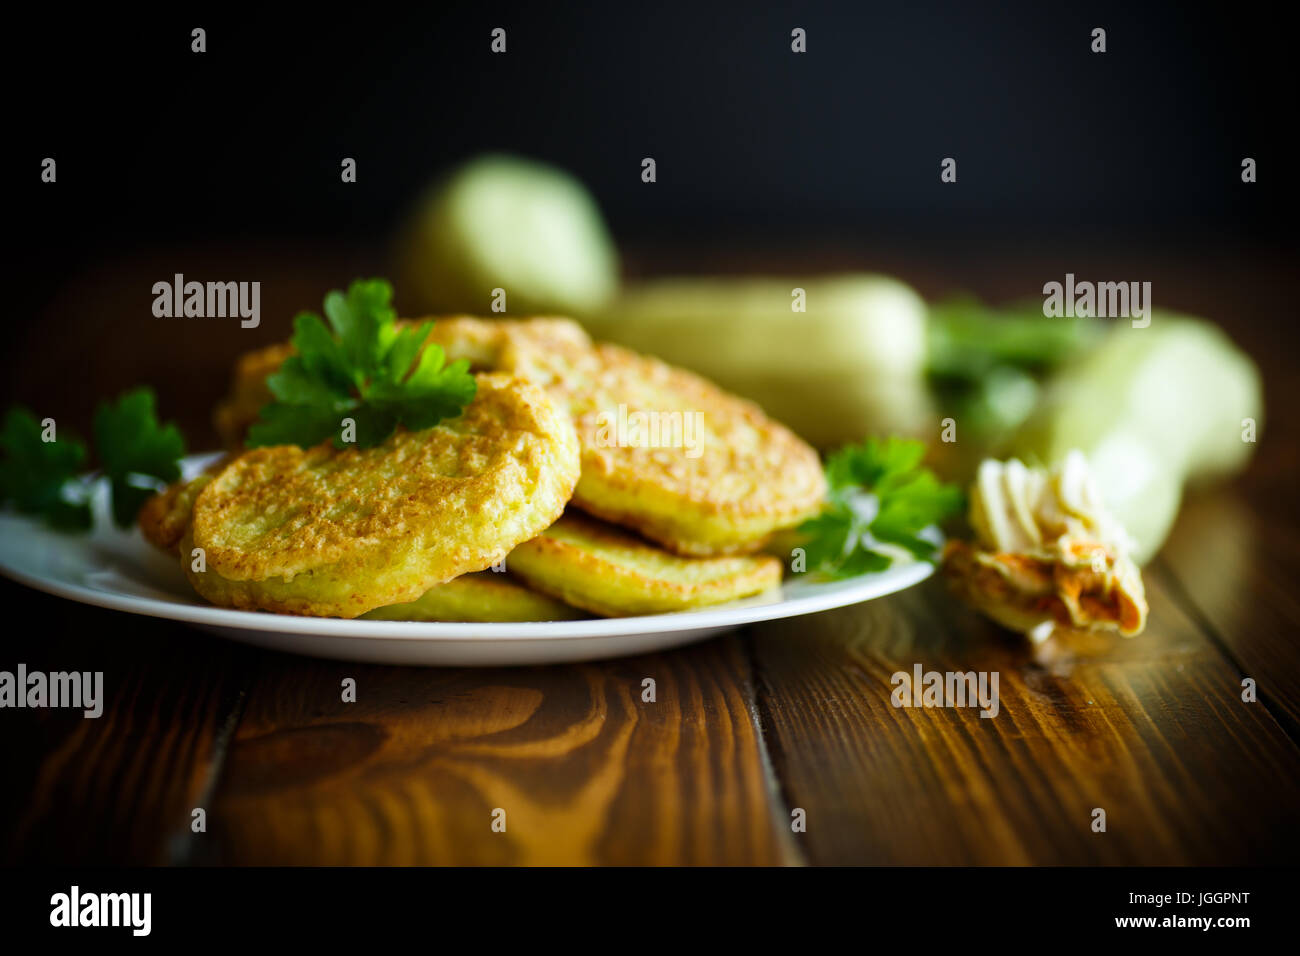 zucchini pancakes on a plate - Stock Image